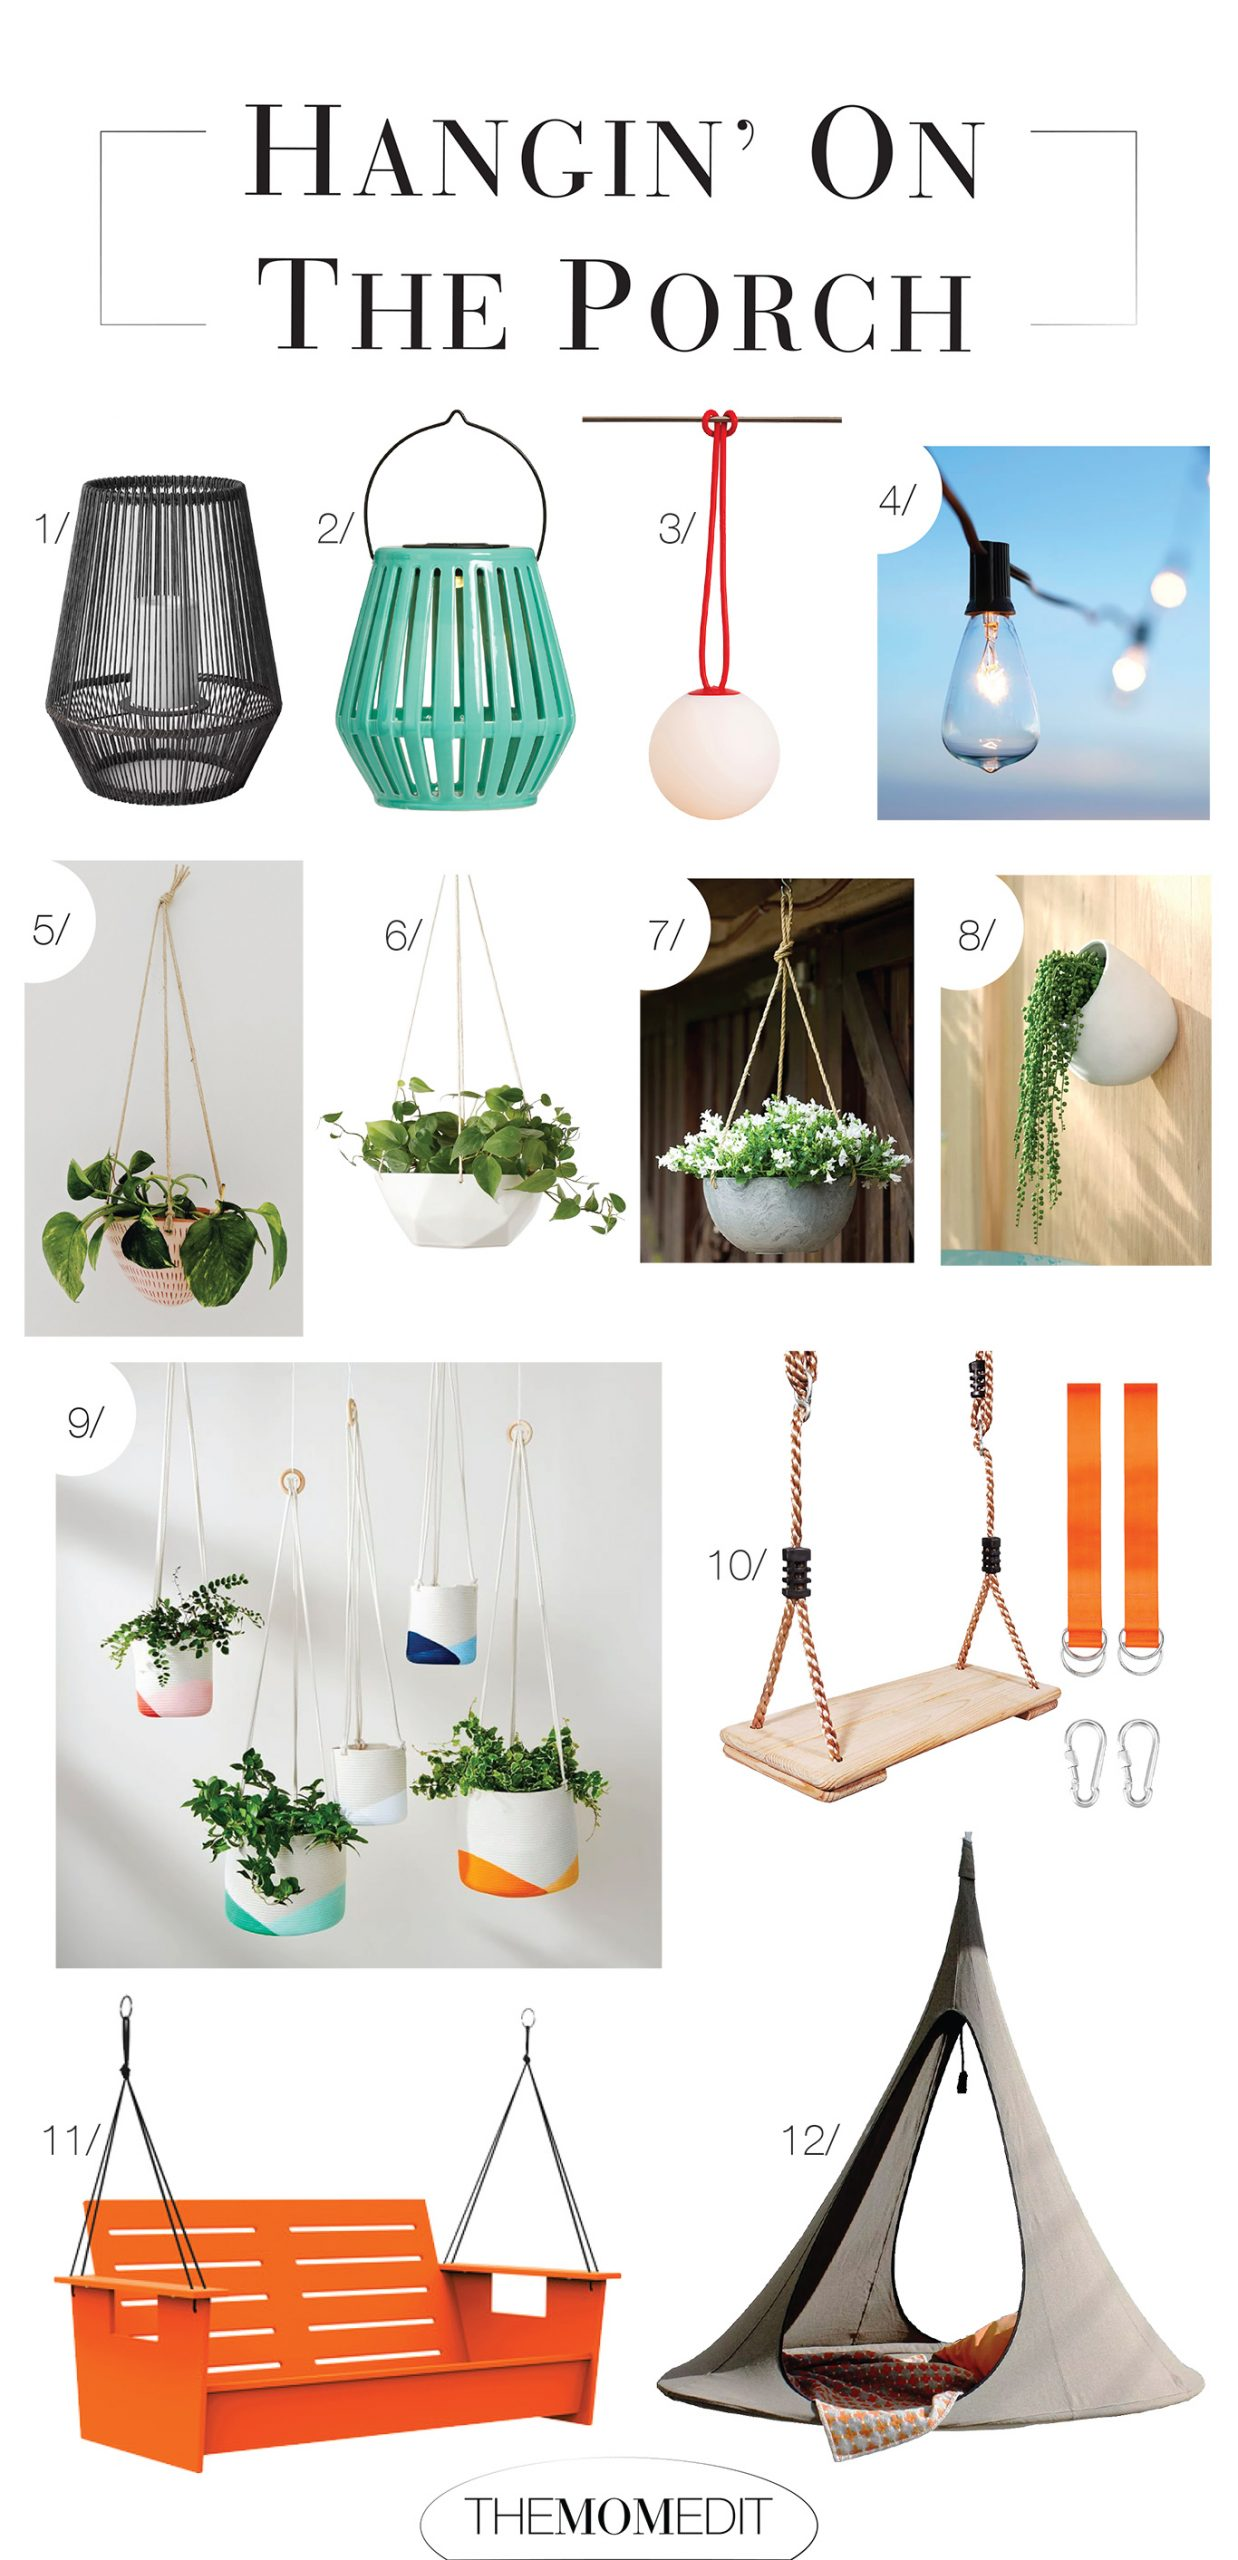 Give us pretty hanging string lights, a gorg hurricane lanterns, a perfectly handcrafted hanging planters + maybe a porch swing...anywhere can be a dreamy place to hang!